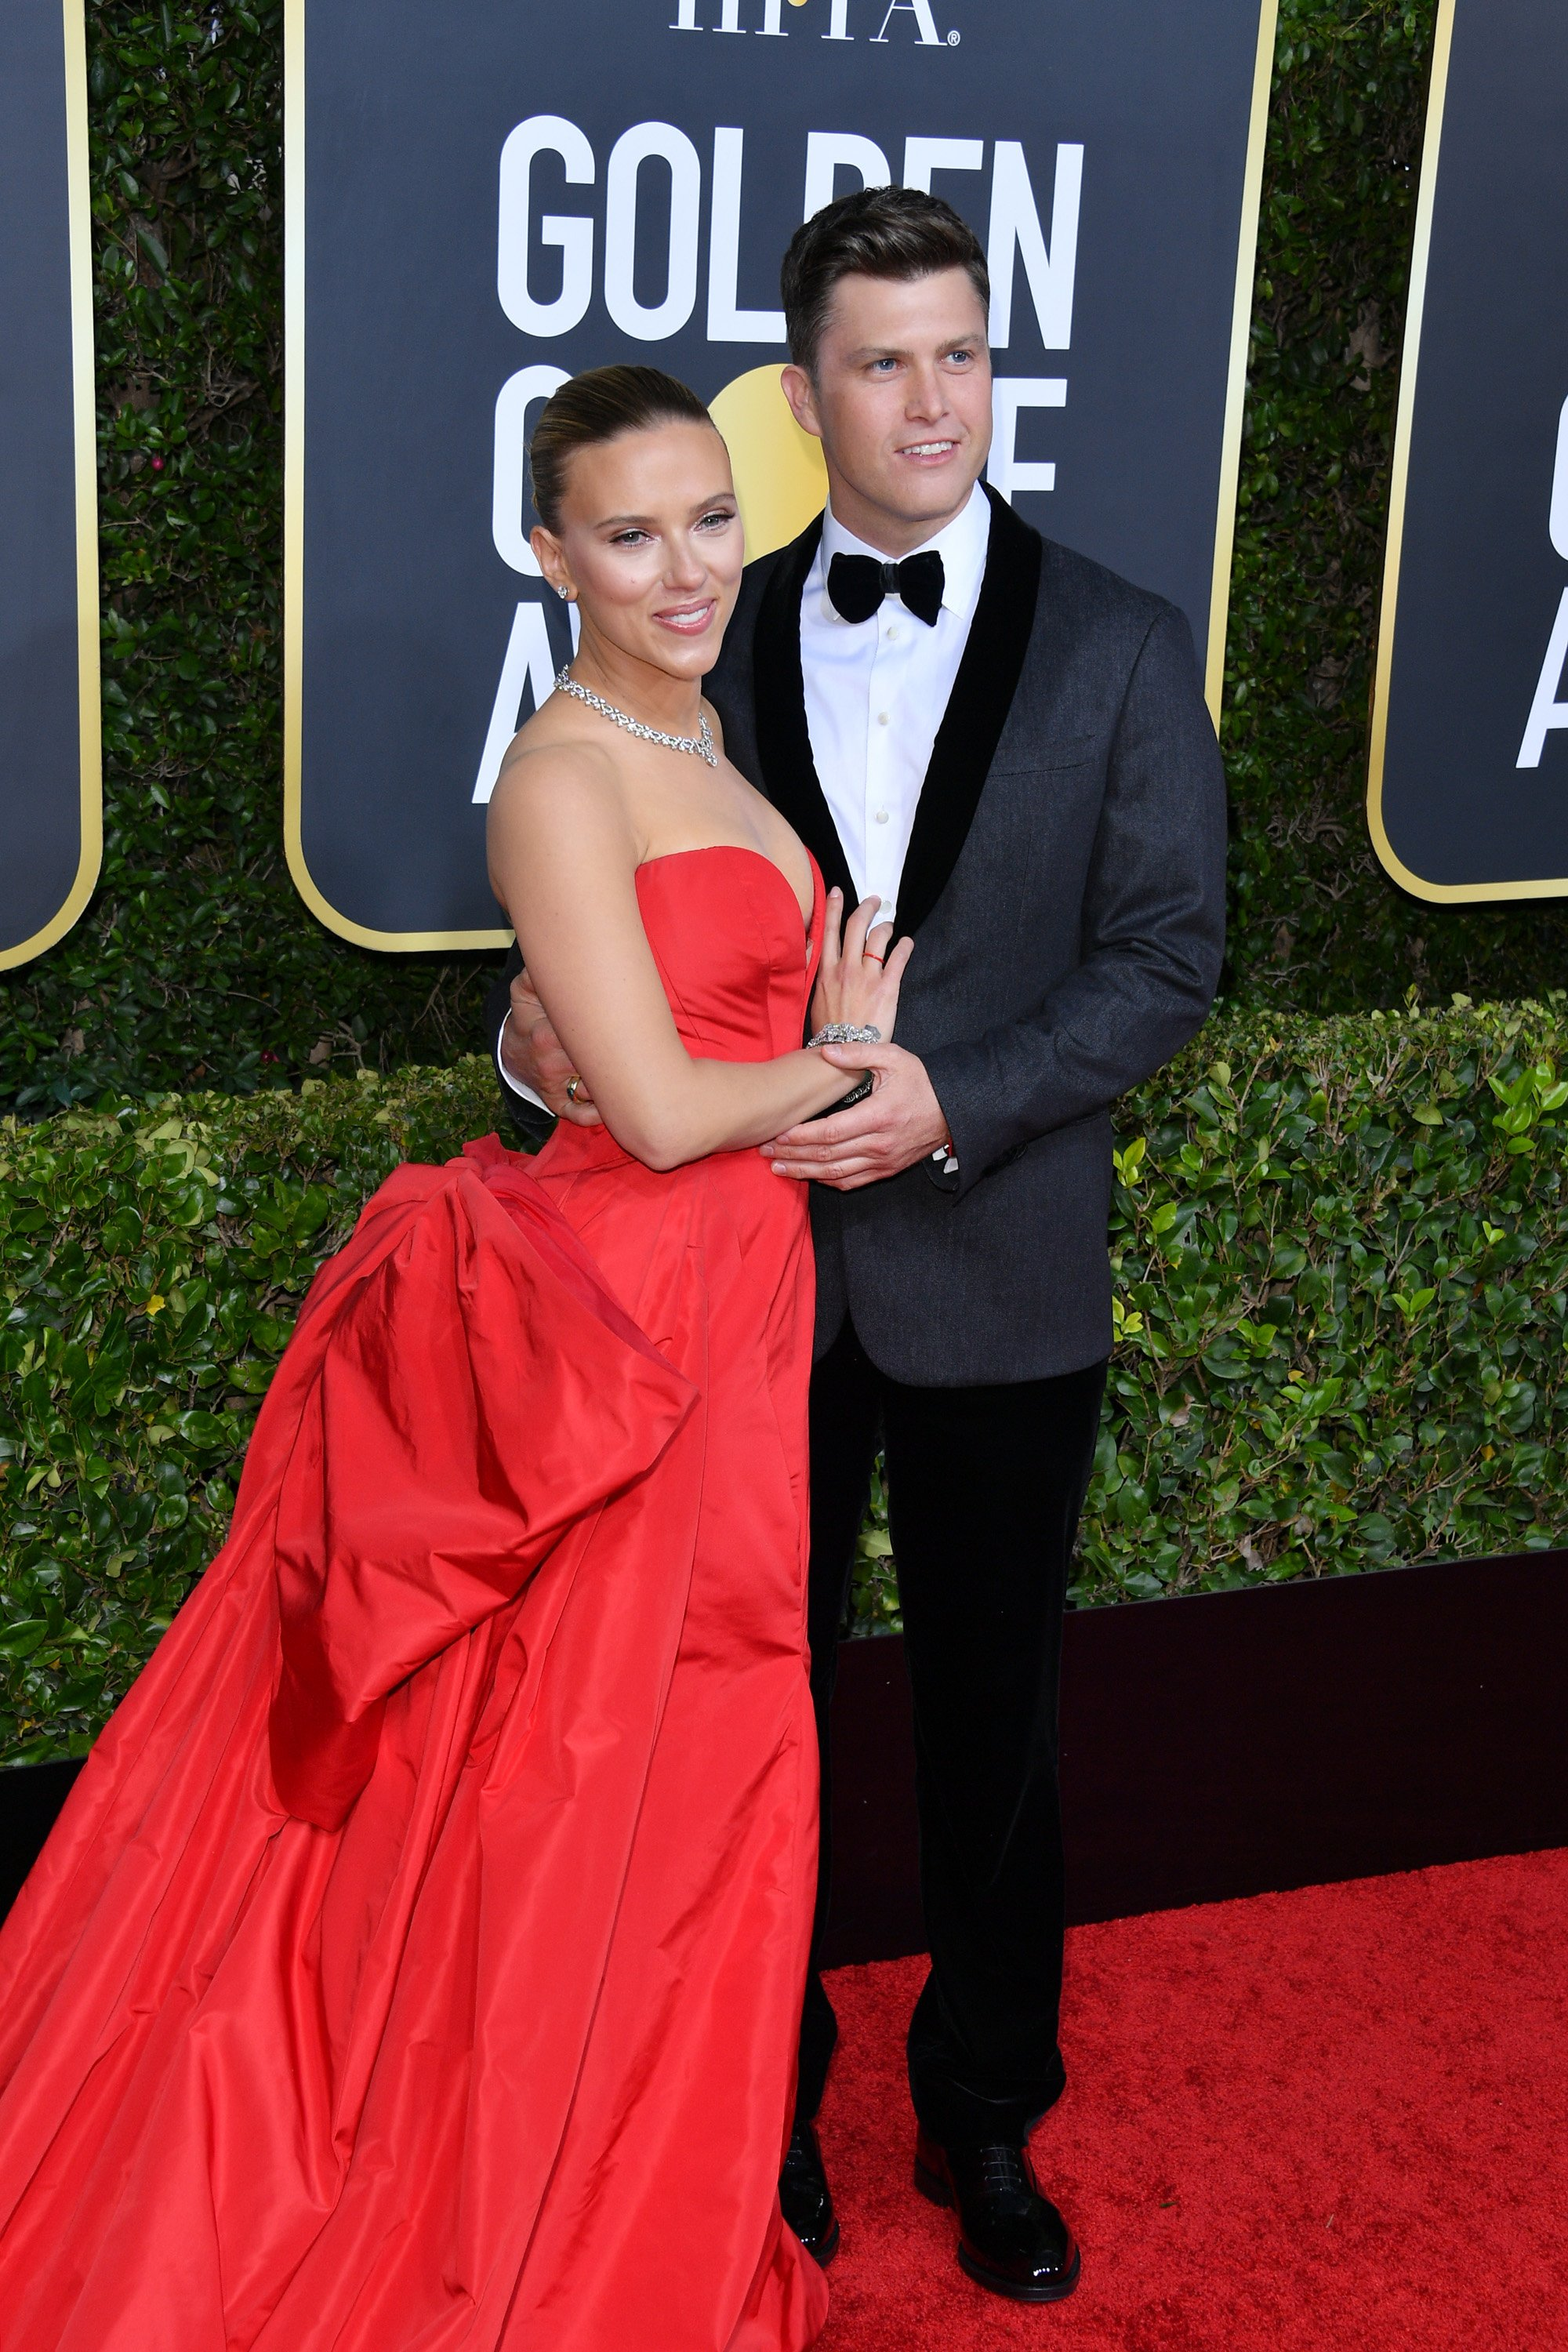 Scarlett Johansson and Colin Jost attend the 77th Annual Golden Globe Awards at The Beverly Hilton Hotel on January 05, 2020 in Beverly Hills, California | Photo: Getty Images